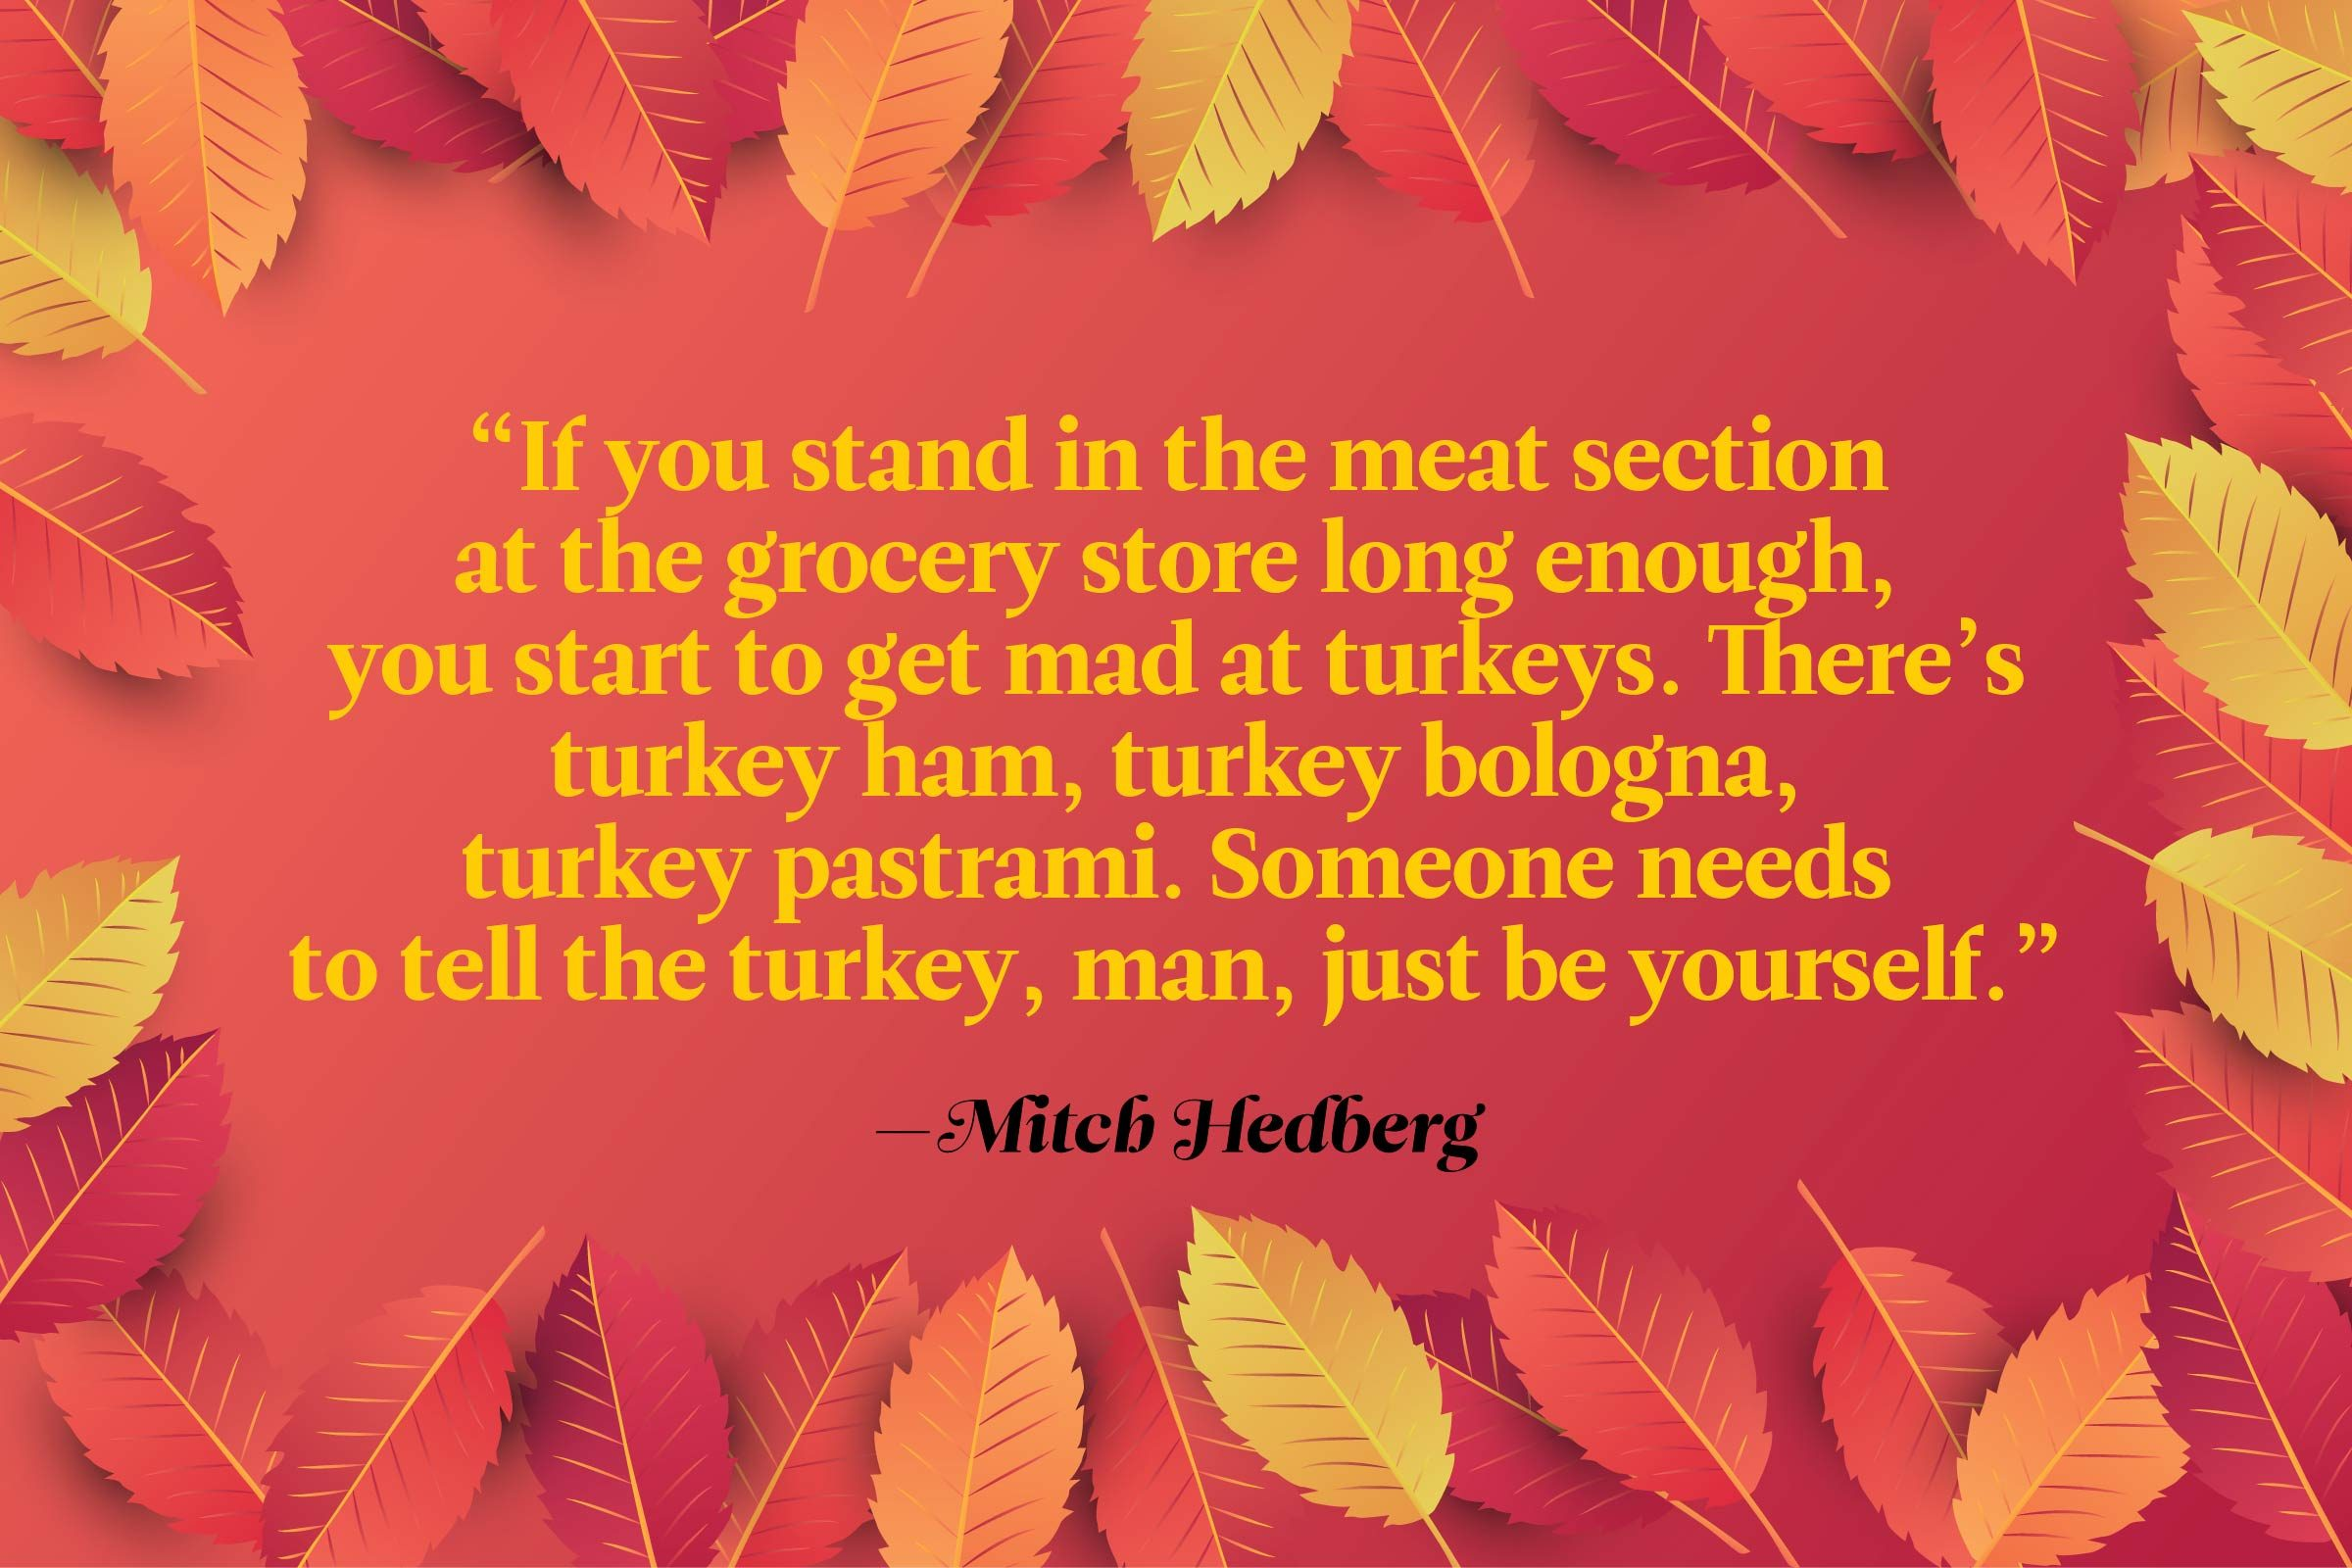 Funny Thanksgiving Quotes - Mitch Hedberg